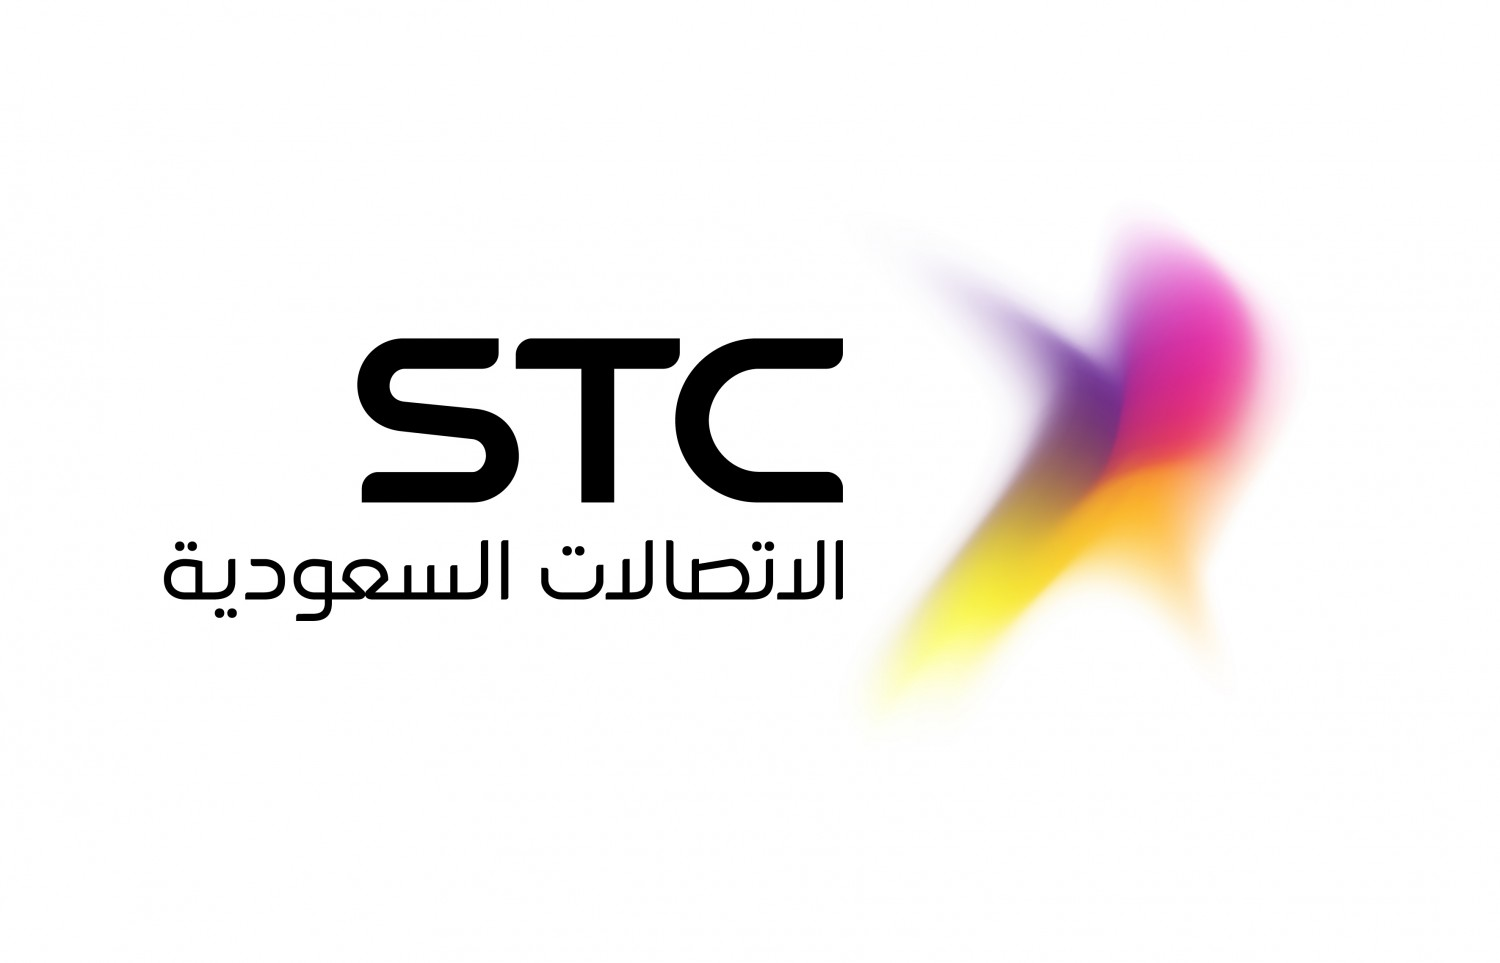 Saudi Telecom: The Memorandum of Understanding with Vodafone ended without an agreement